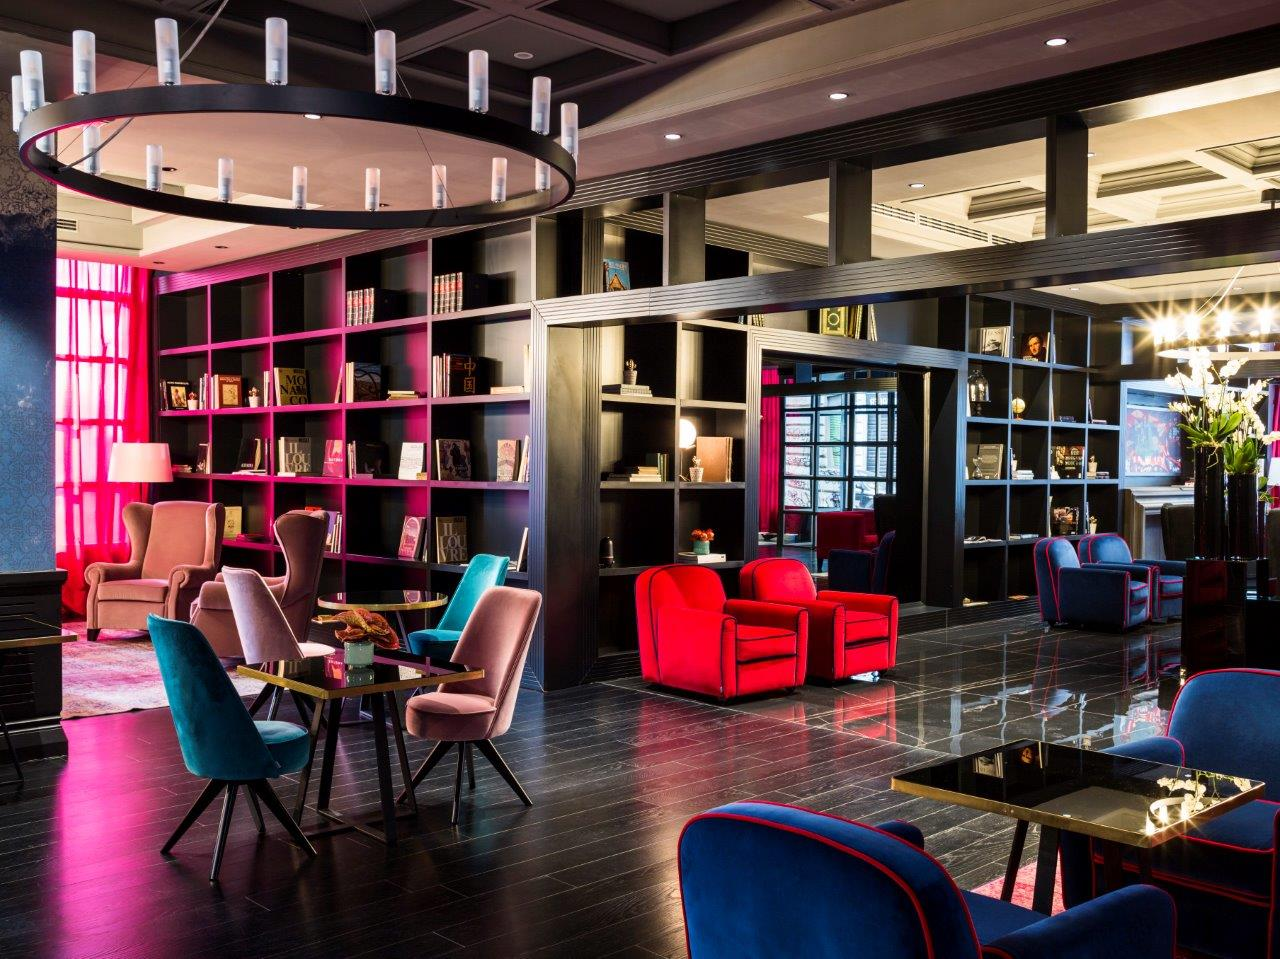 La hall del design hotel Fifty House Soho